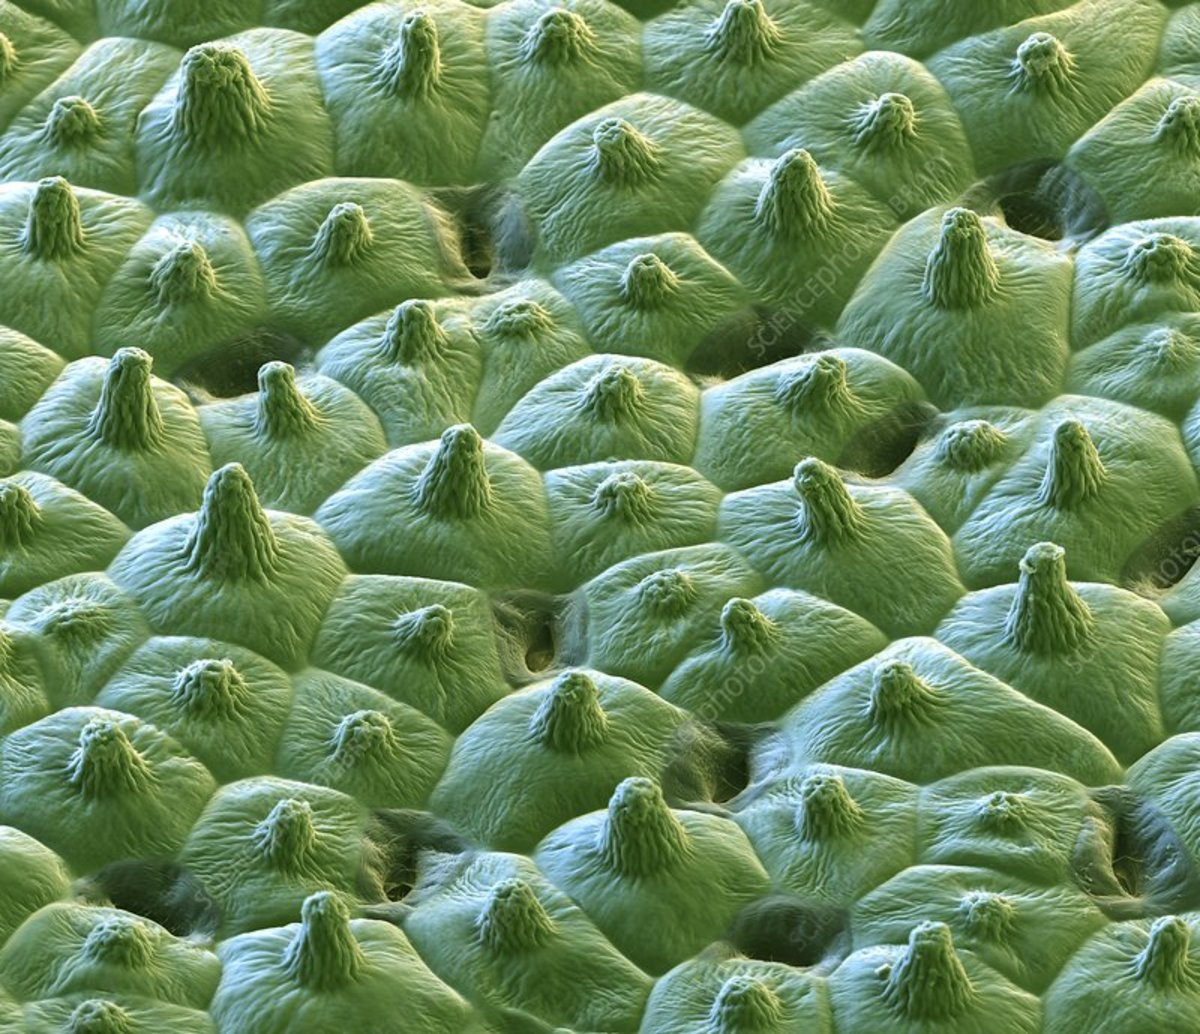 Lotus leaf surface. Coloured scanning electron micrograph (SEM) showing the microstructures on the surface of a leaf from a lotus (Nelumbo sp.) plant.